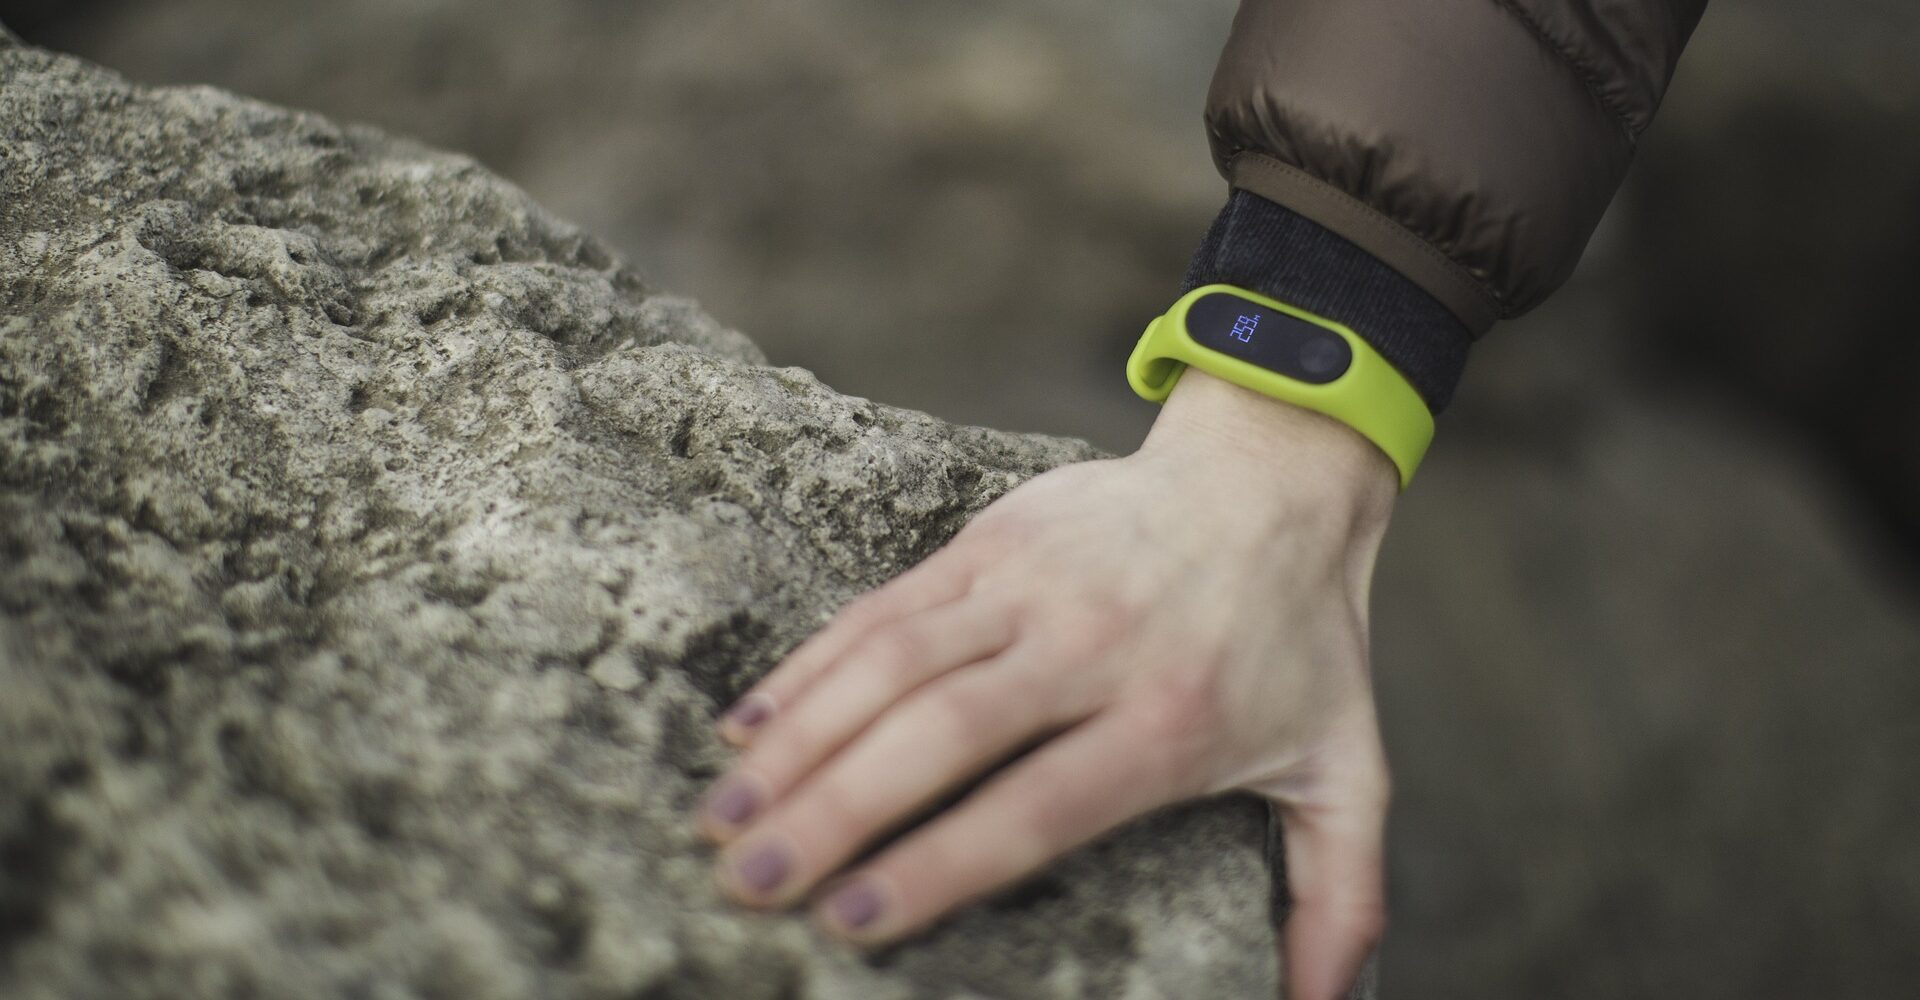 The European Commission has approved the purchase of Fitbit by Google